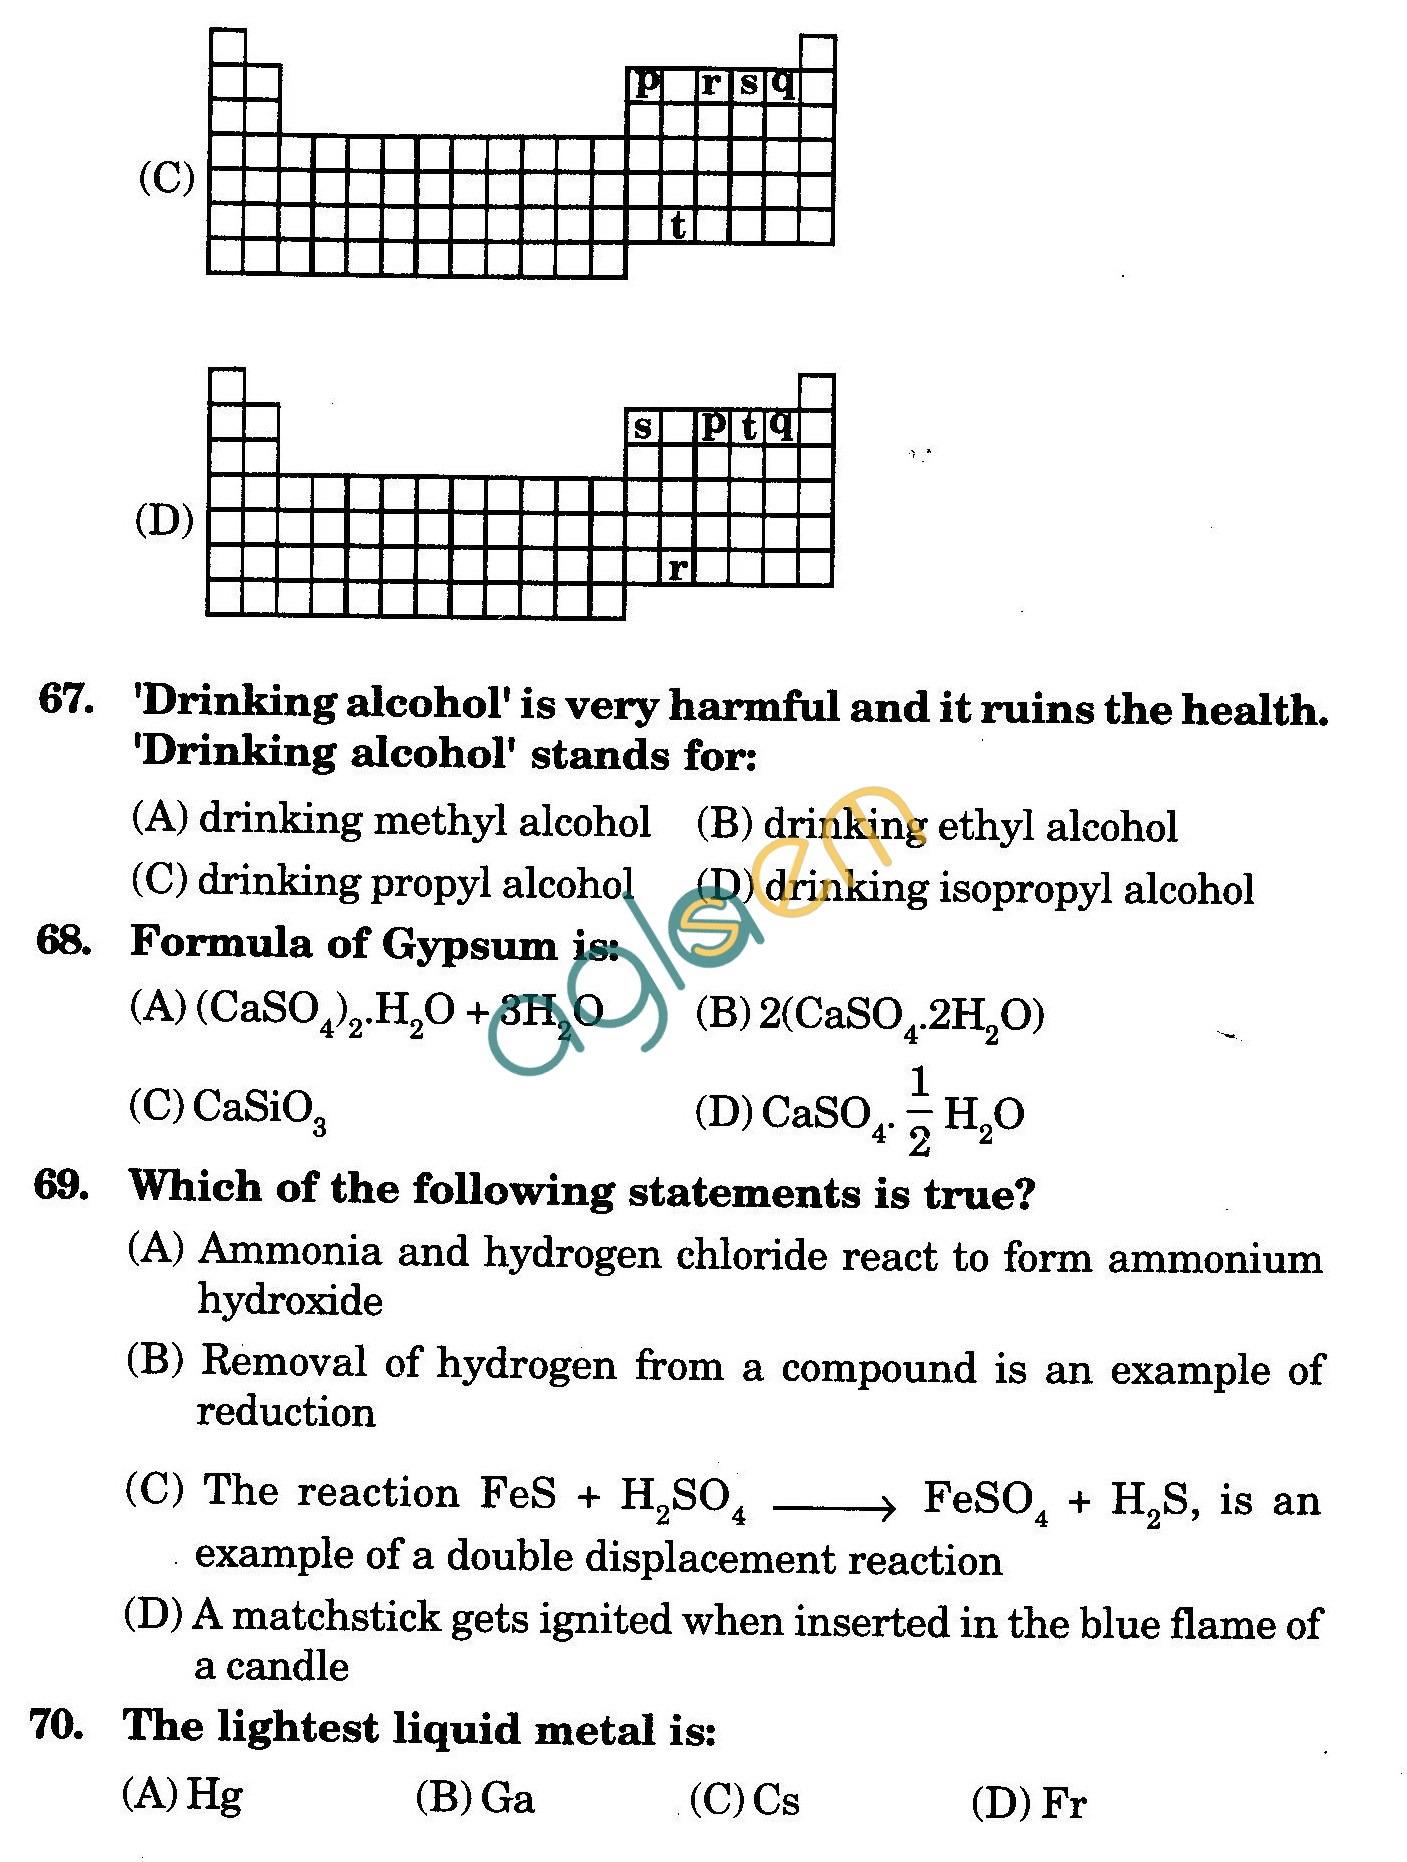 NSTSE 2009 Class X Question Paper with Answers - Chemistry